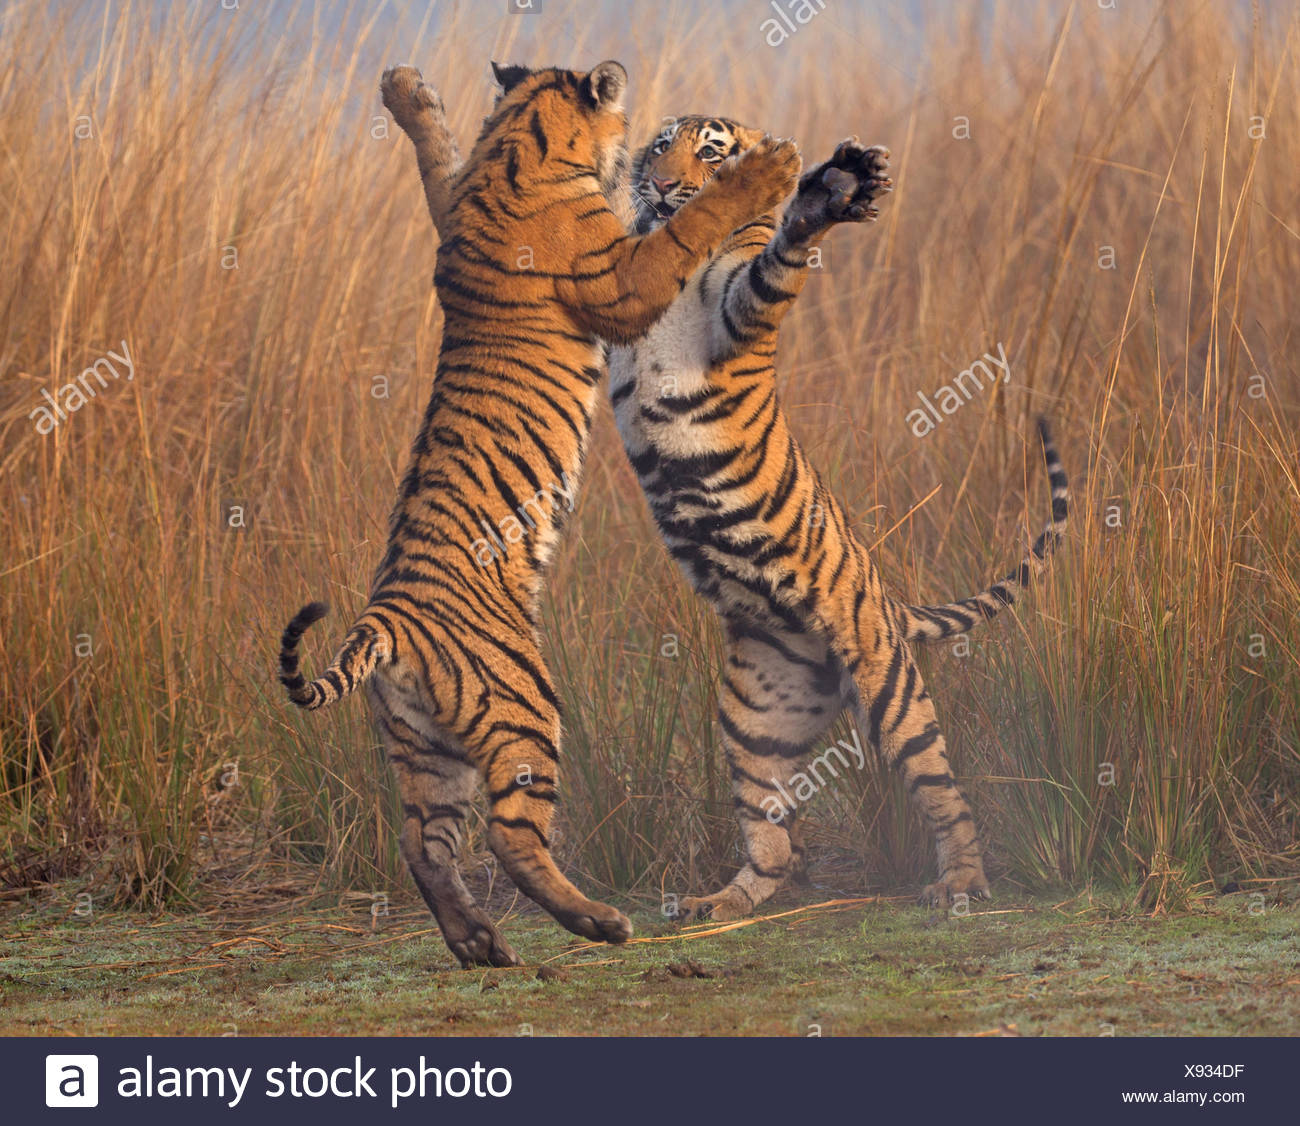 Bengal tiger (Panthera tigris tigris) 11 month cubs play fighting, Ranthambhore National Park, India. - Stock Image